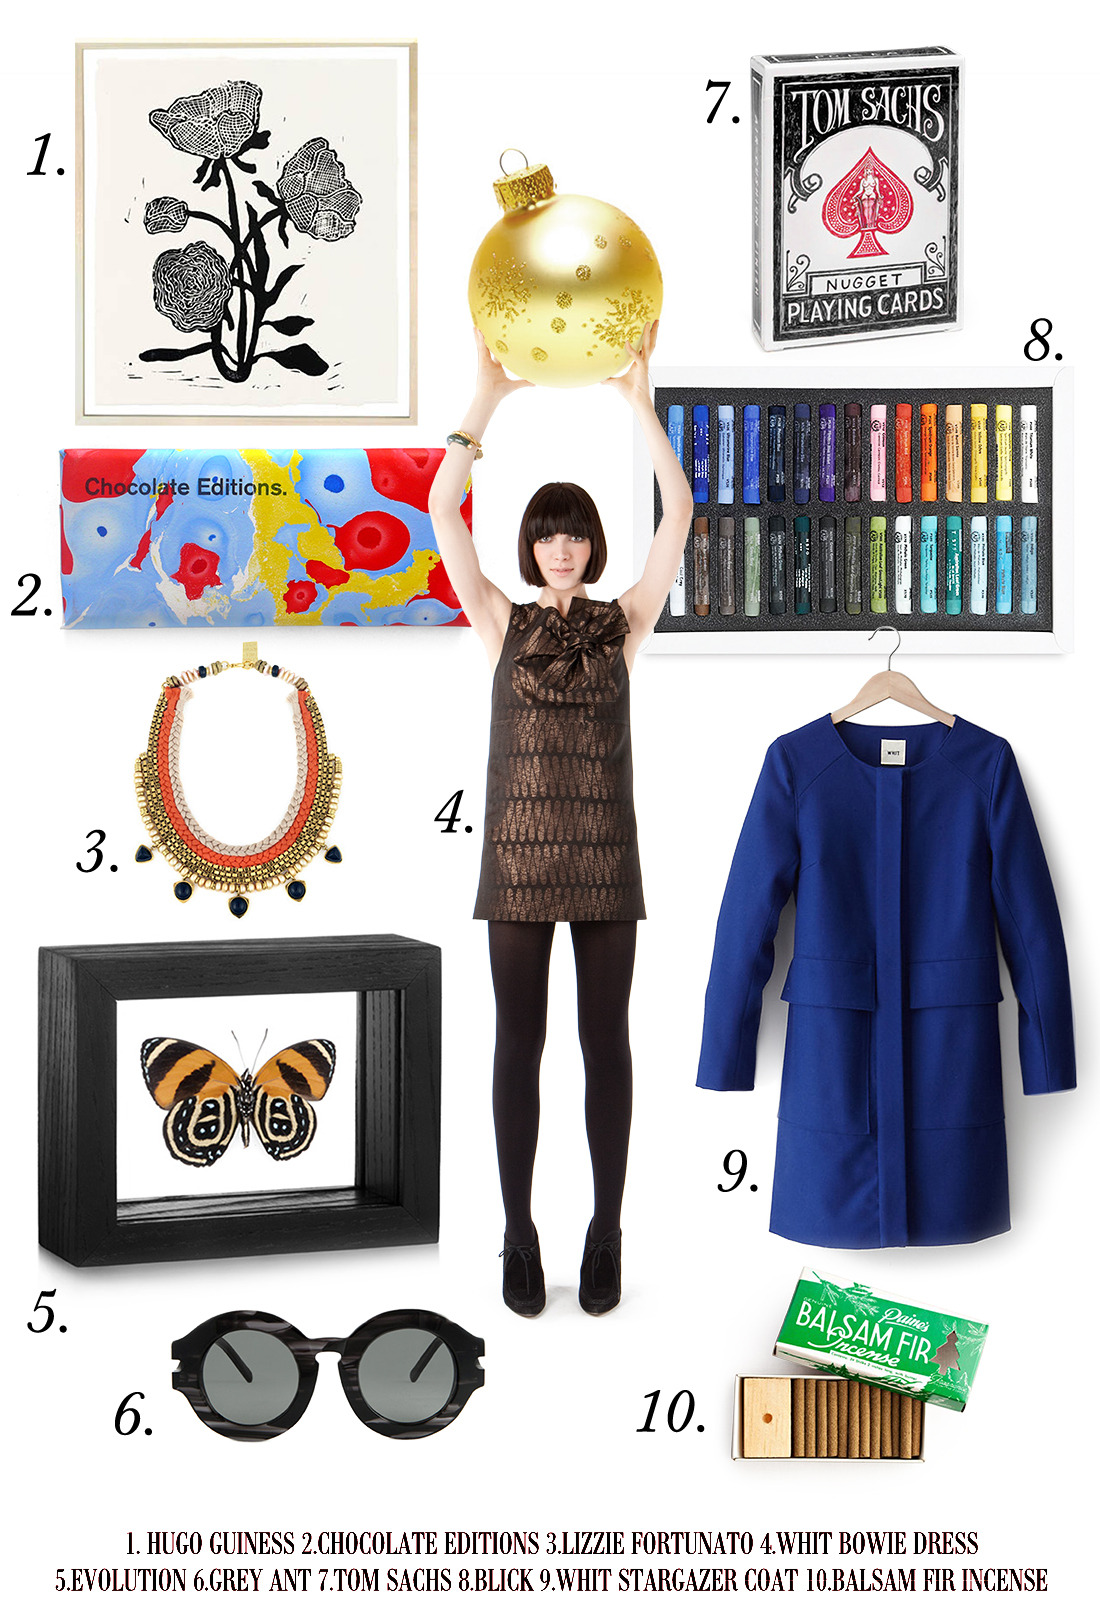 1. Hugo Guinness Flower Print 2. Chocolate Editions 3. Necklace 4. WHIT Bow Dress 5. Framed Insect 6. Grey Ant Specs 7. Tom Sachs Playing Cards 8. Pastel Set 9. WHIT Stargazer Coat 10. Fir Tree Incense